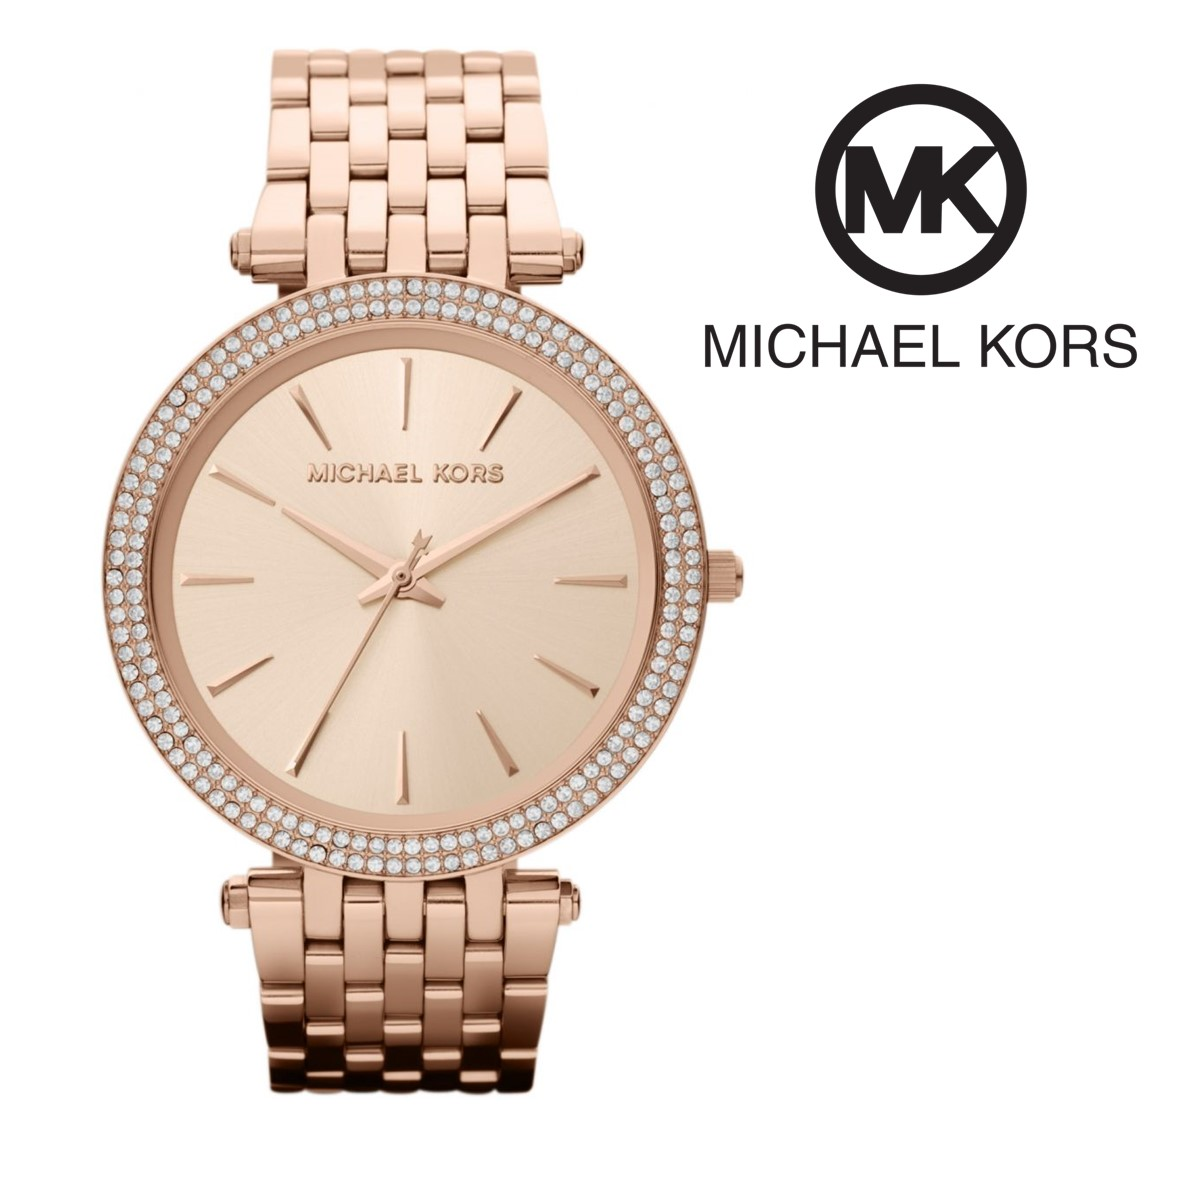 Relógio Michael Kors® Darci Rose Gold I 5ATM - You Like It b5f14ddc48